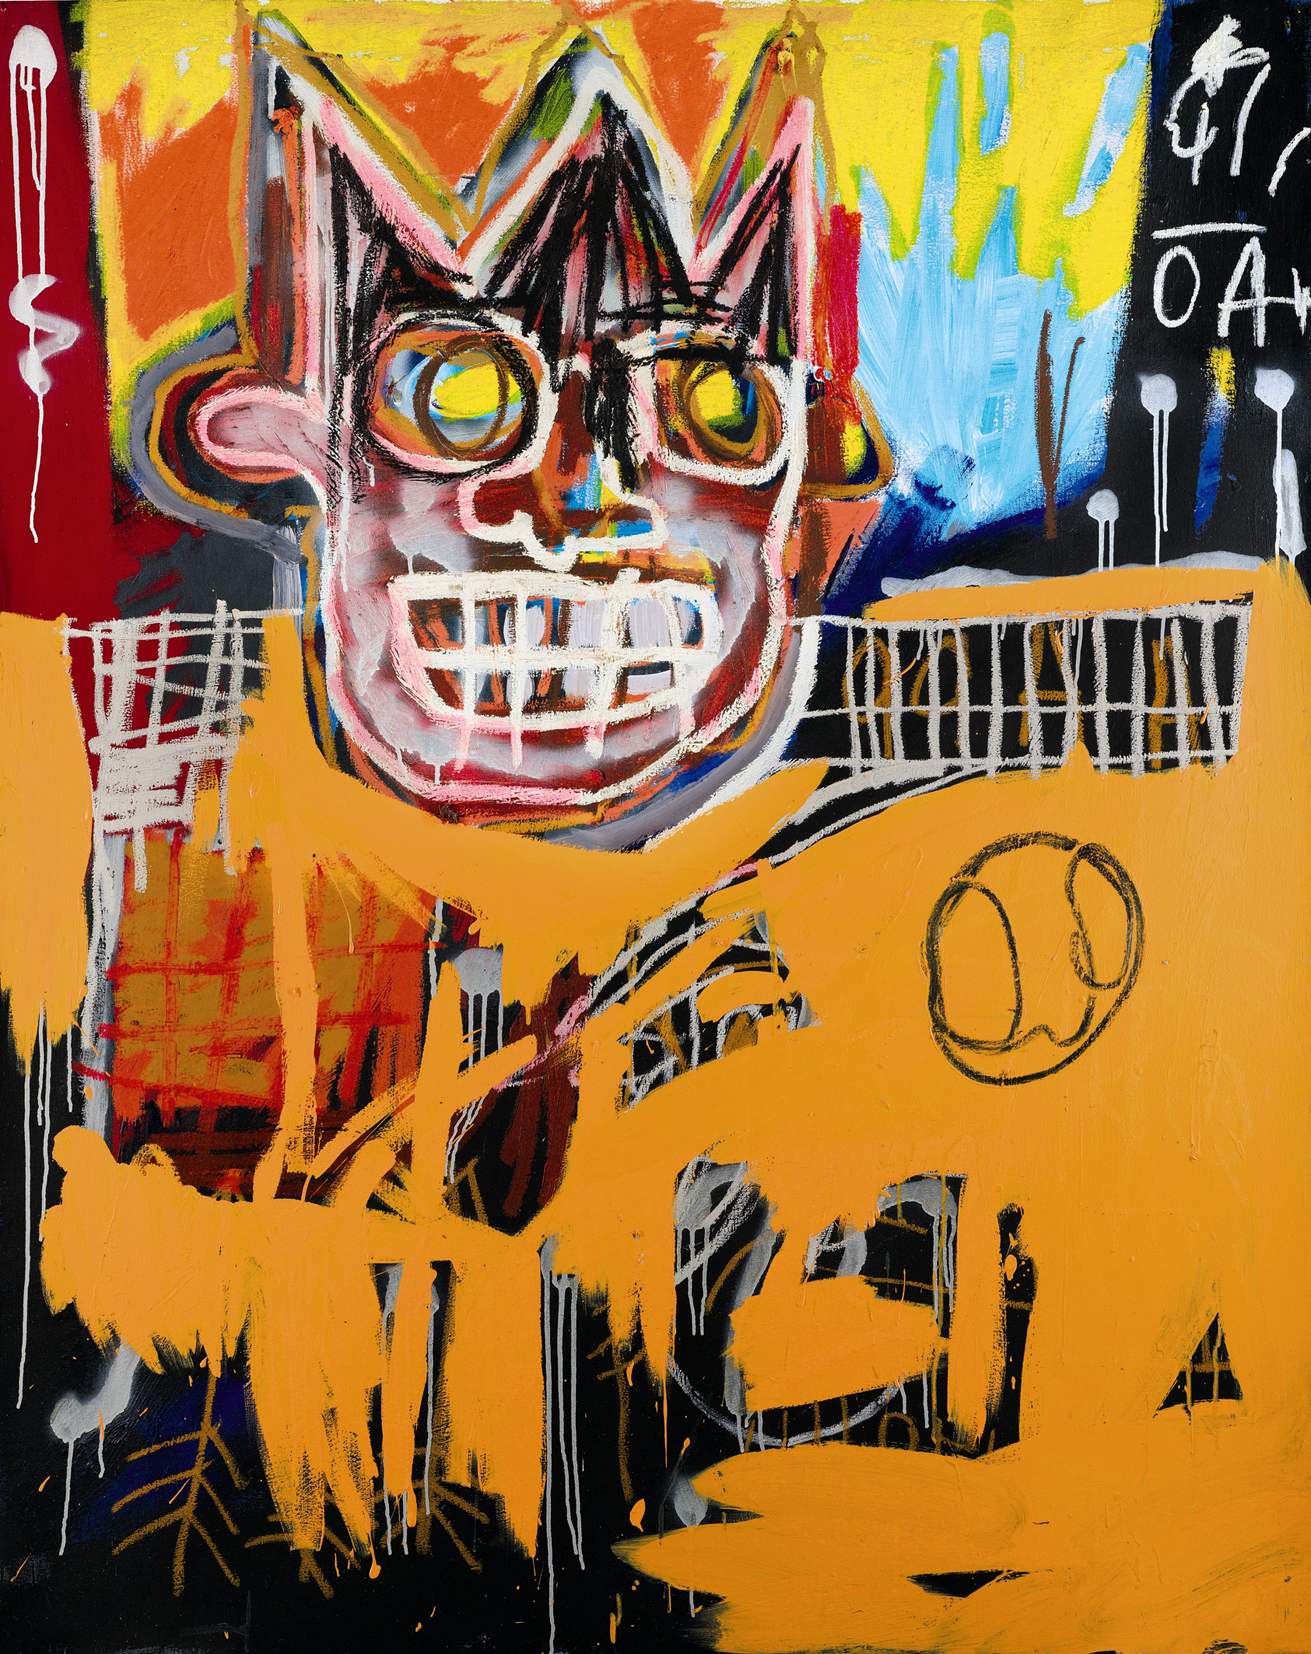 the life and art of jean michel basquiat Cranbrook art museum is the first tour stop of the exhibition basquiat before basquiat: east 12th street, 1979-1980, organized by the museum of contemporary art denver.